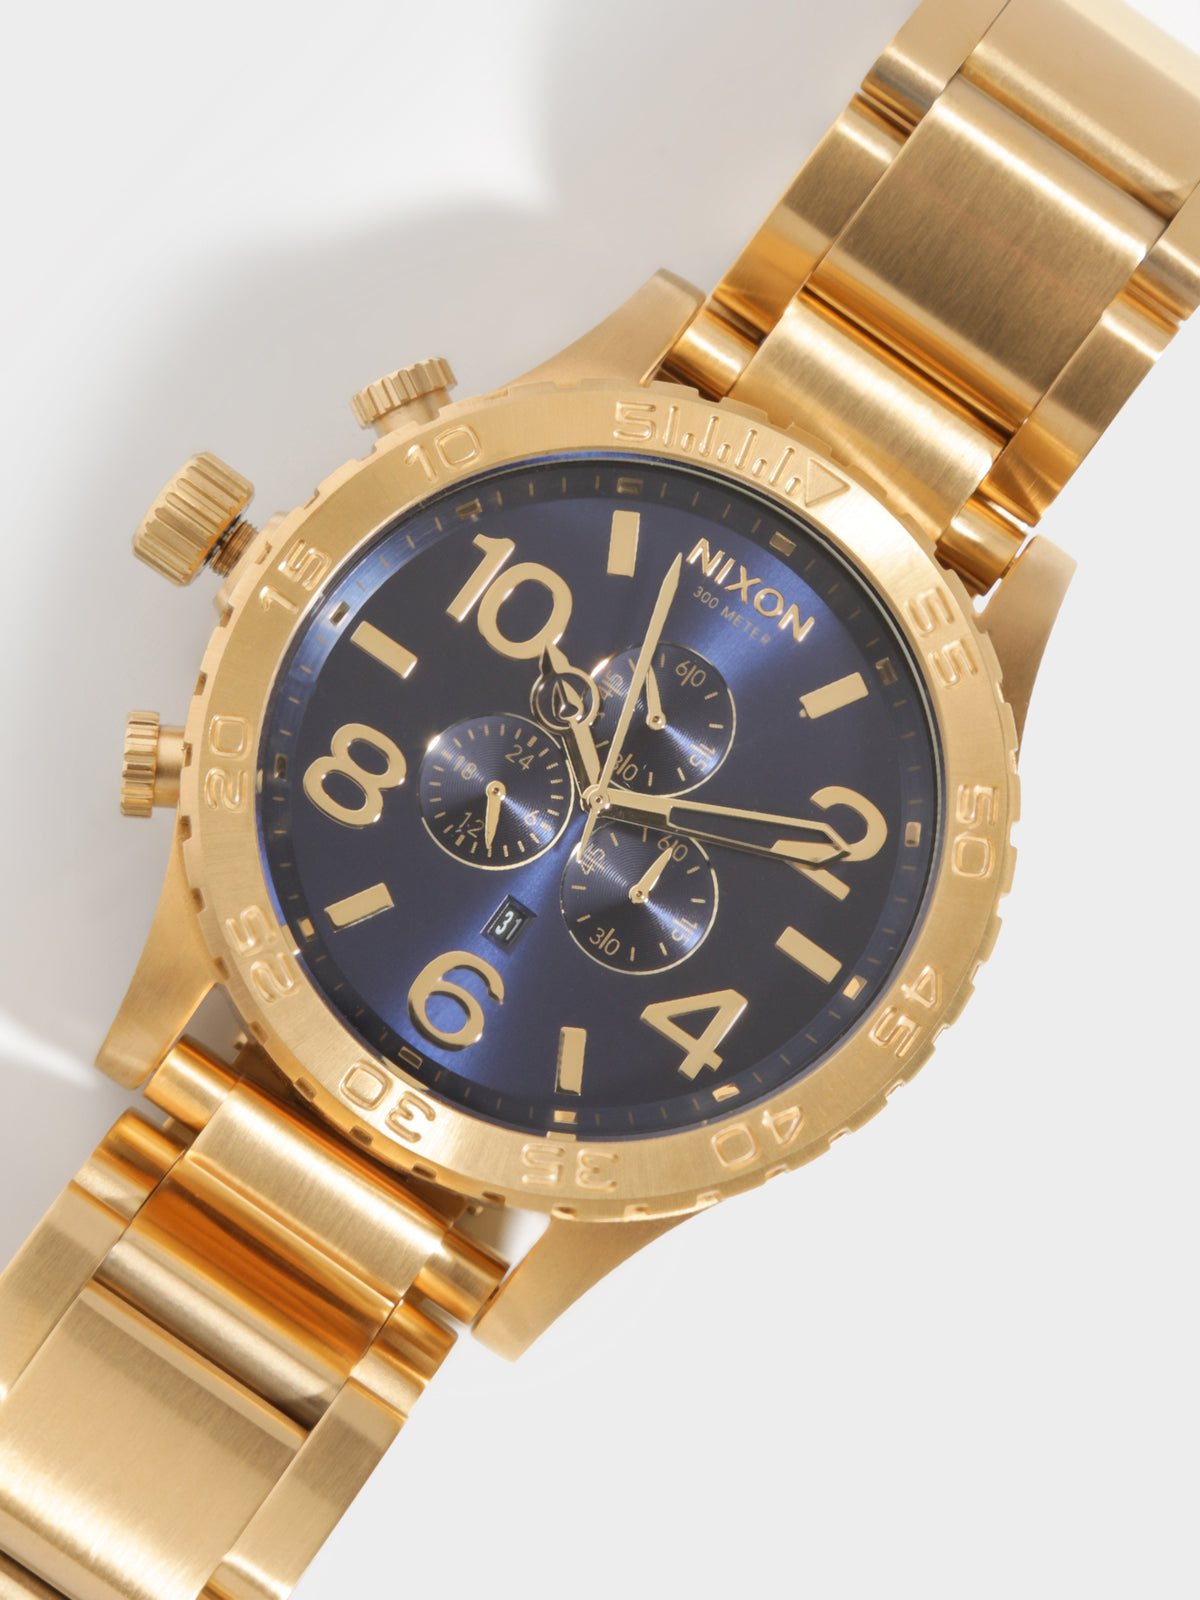 51-30 Chrono Watch in Gold & Navy